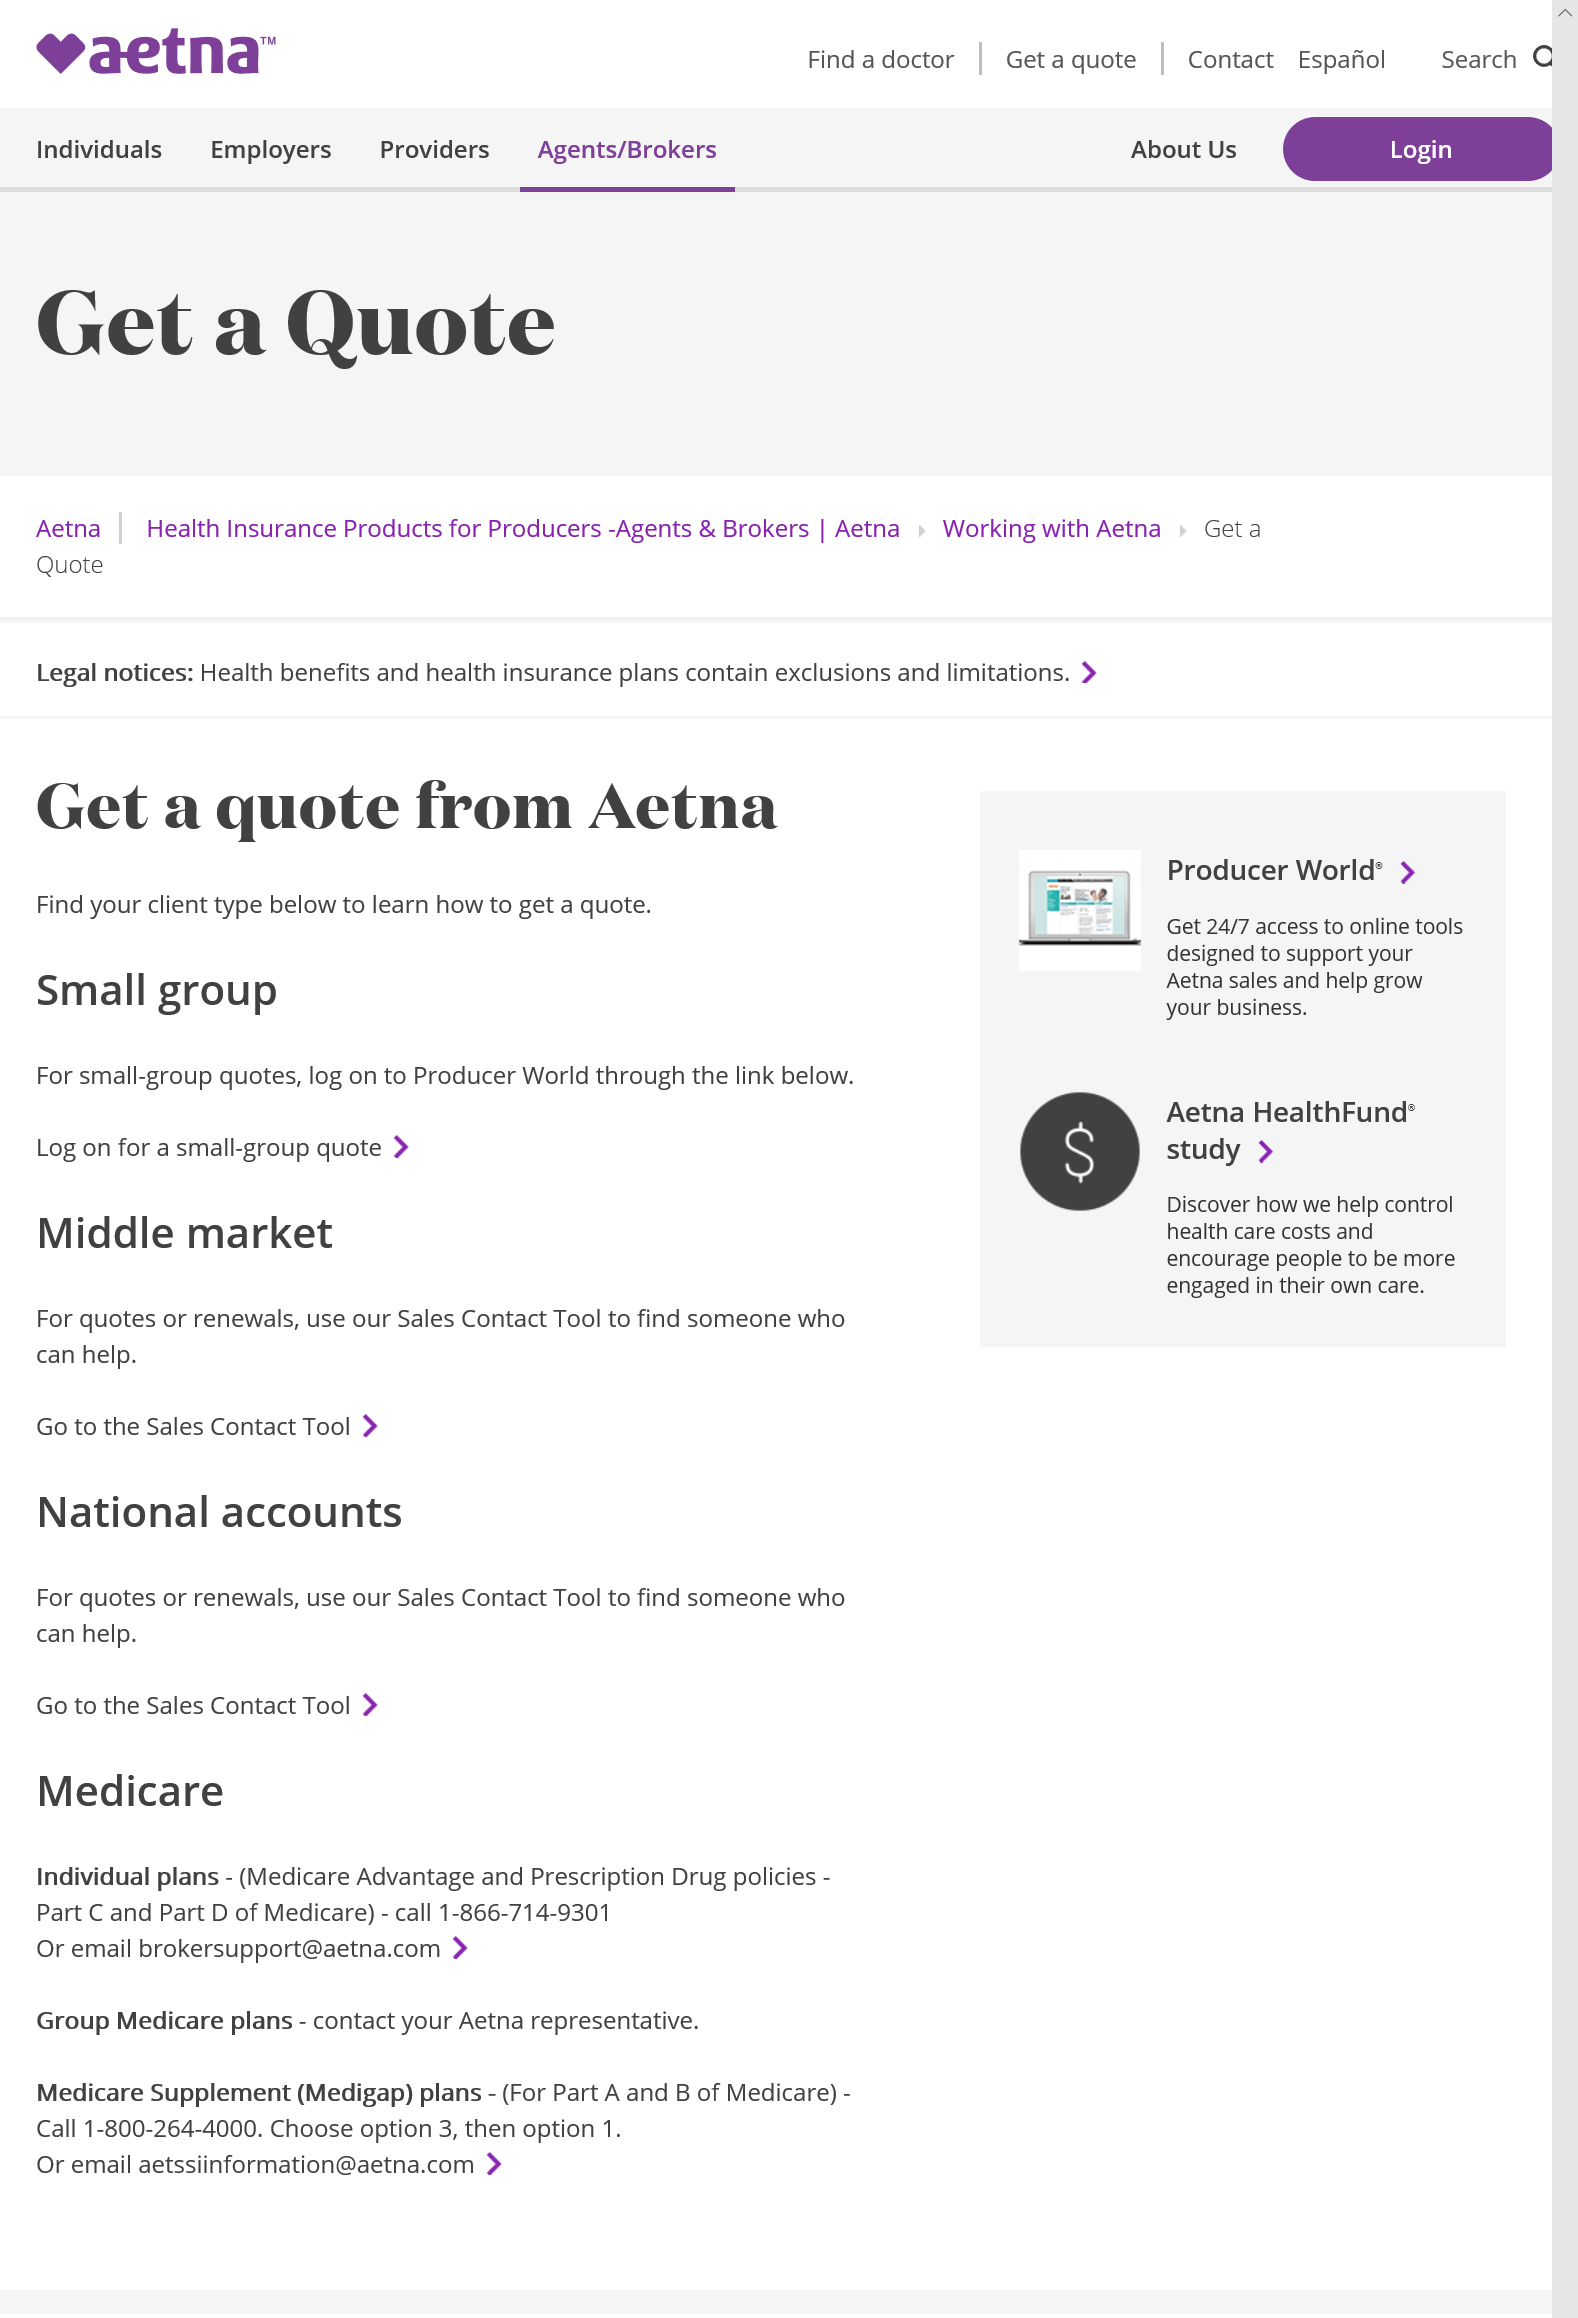 How to Obtain a Quote from Aetna